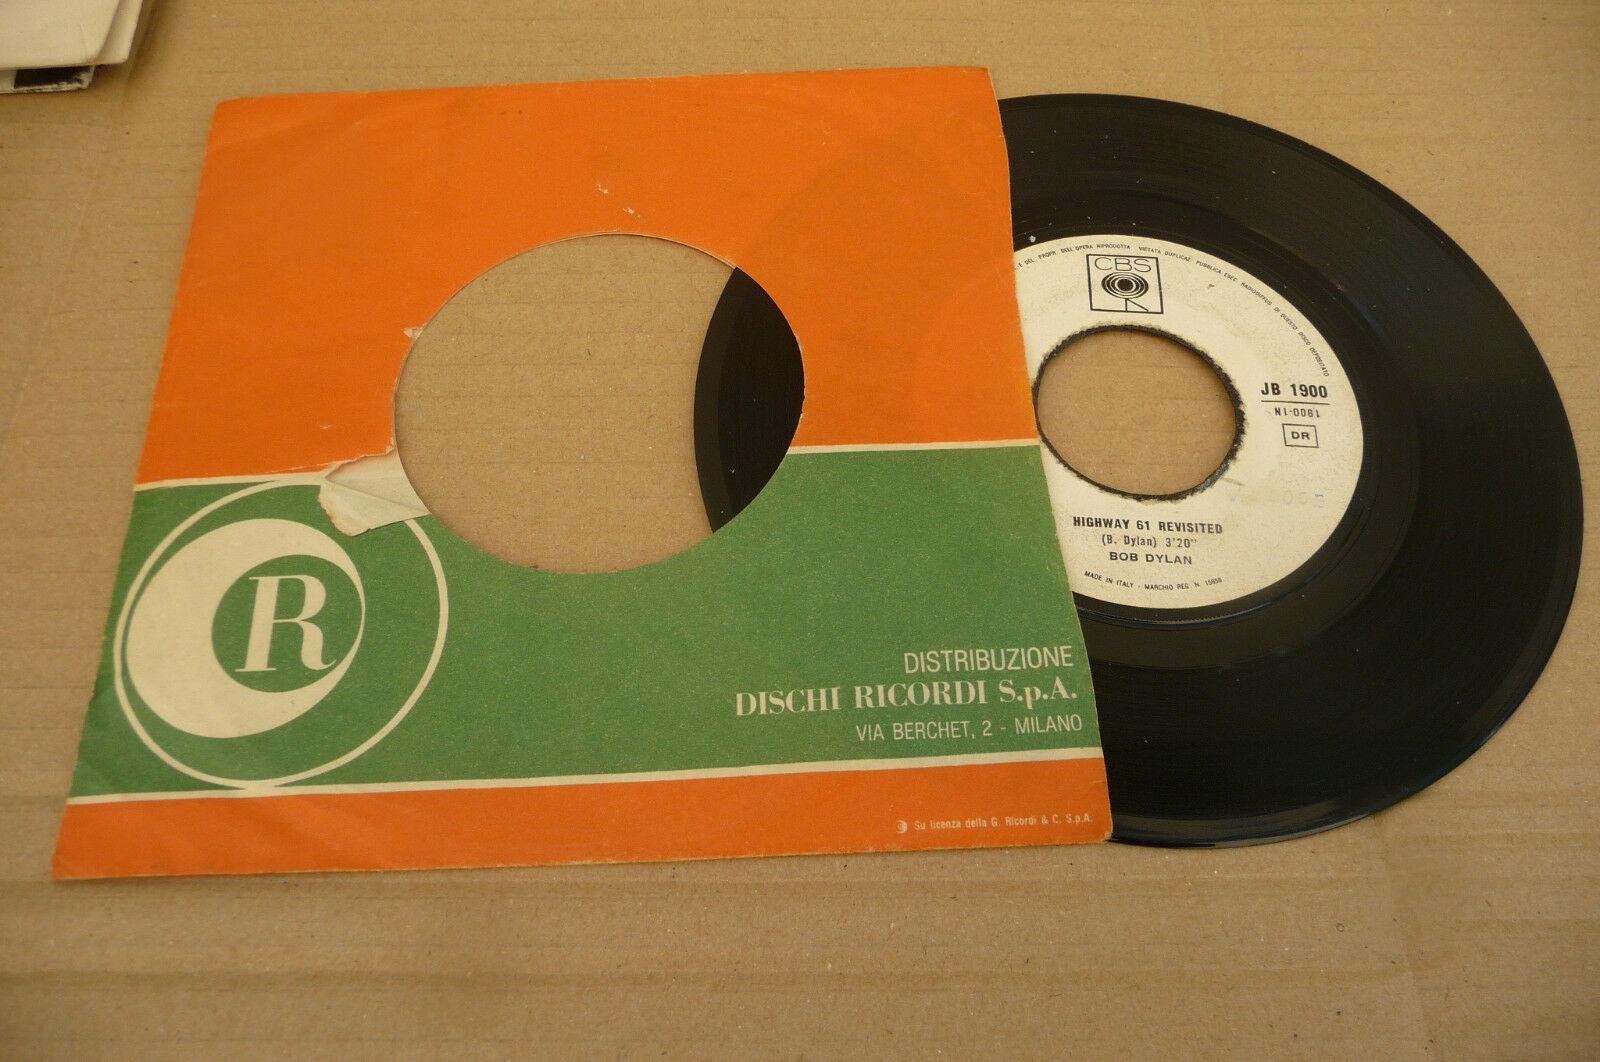 "BOB DYLAN"" HIGHWAY 61 REVISITED- DISCO 45 GIRI CBS Italy 1967"" Ed JB"